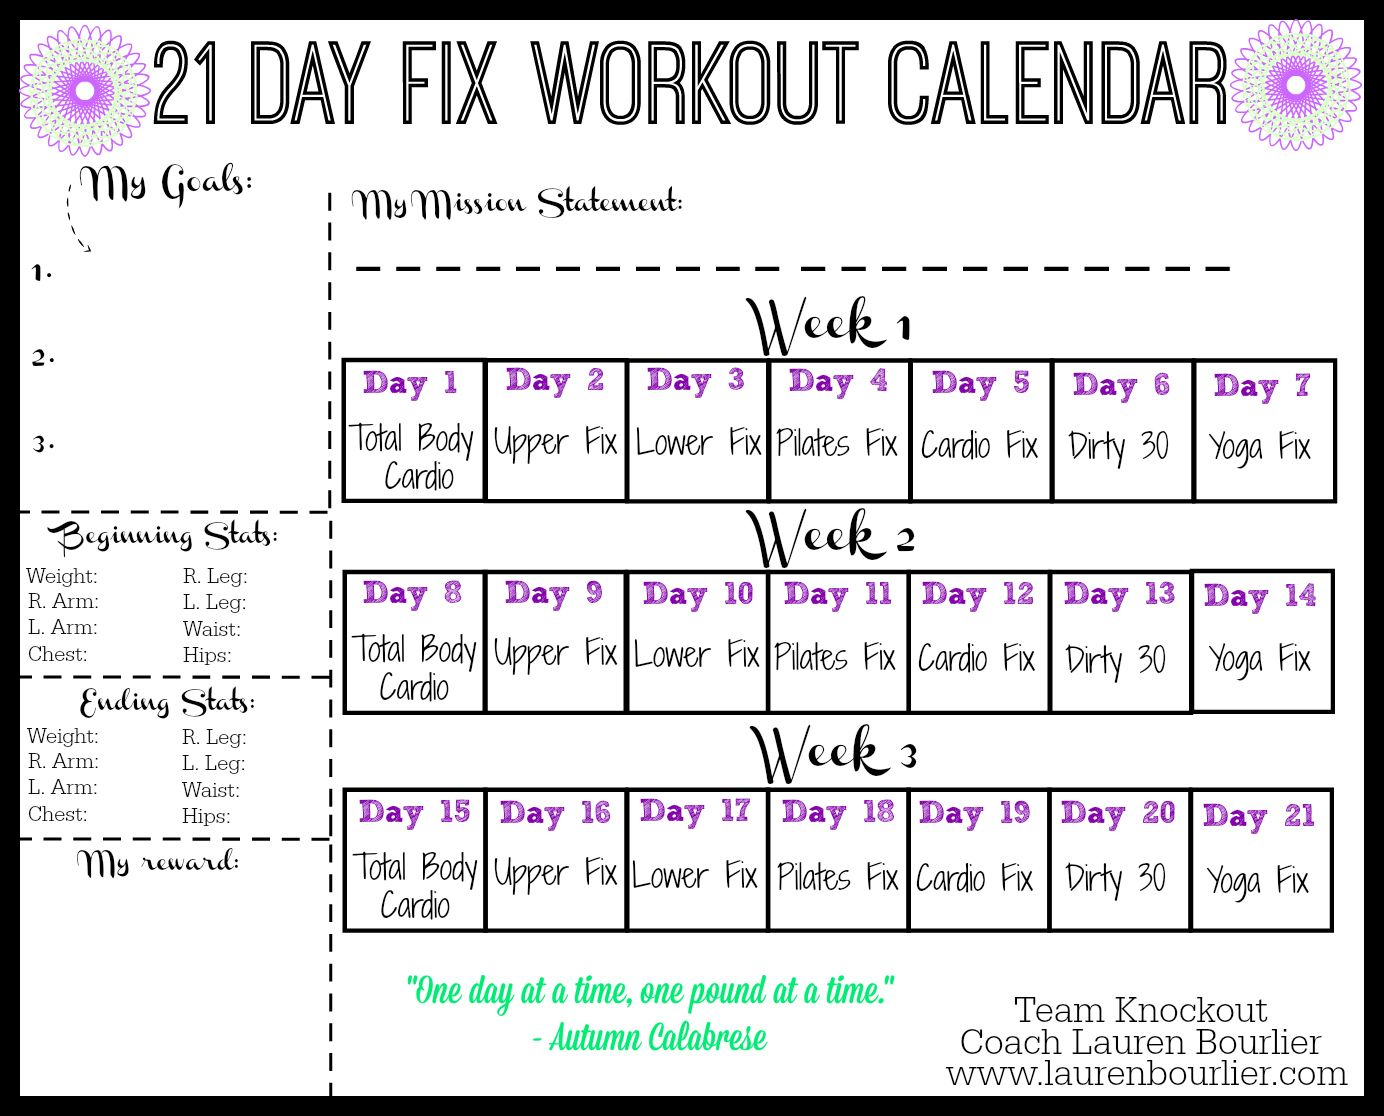 Day Fix Workout Calendar  Lauren Bourlier   Day Fix